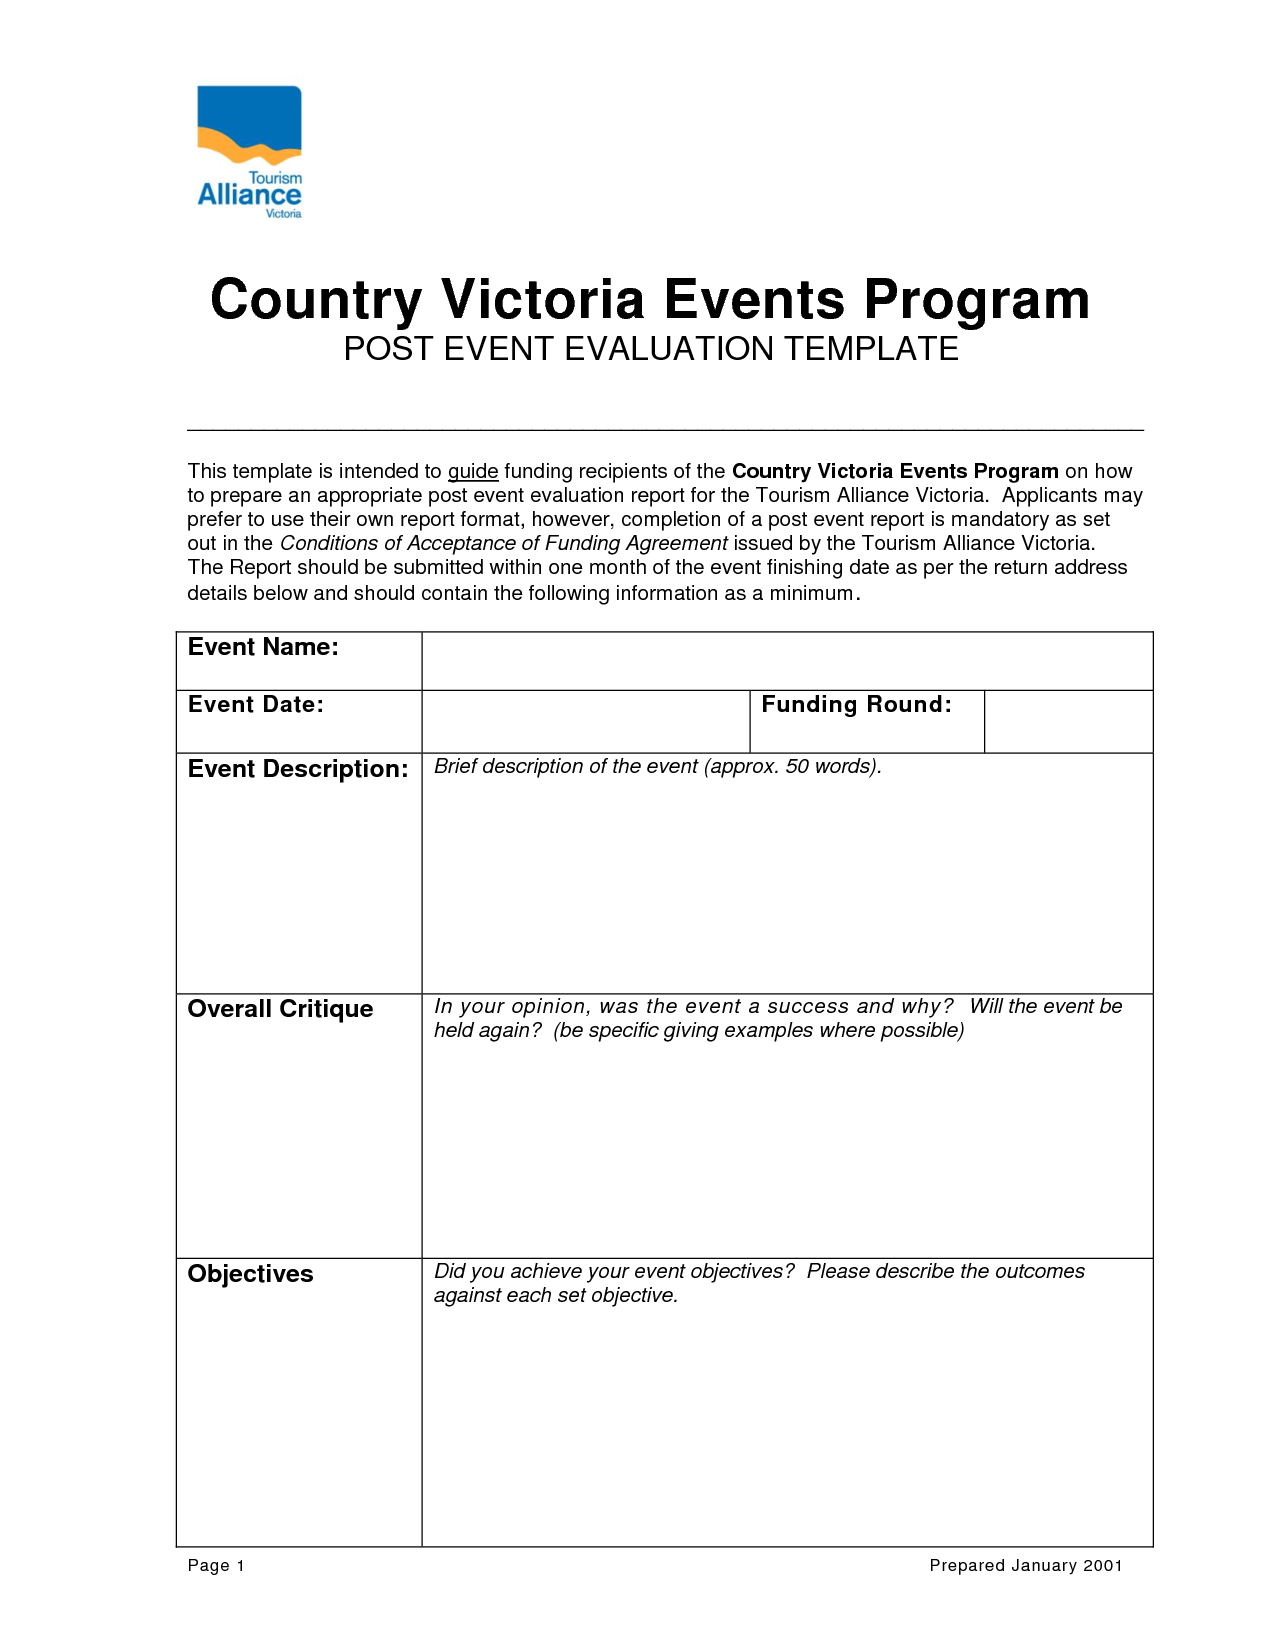 Post Event Evaluation Report Template Within Post Event Evaluation Report Template